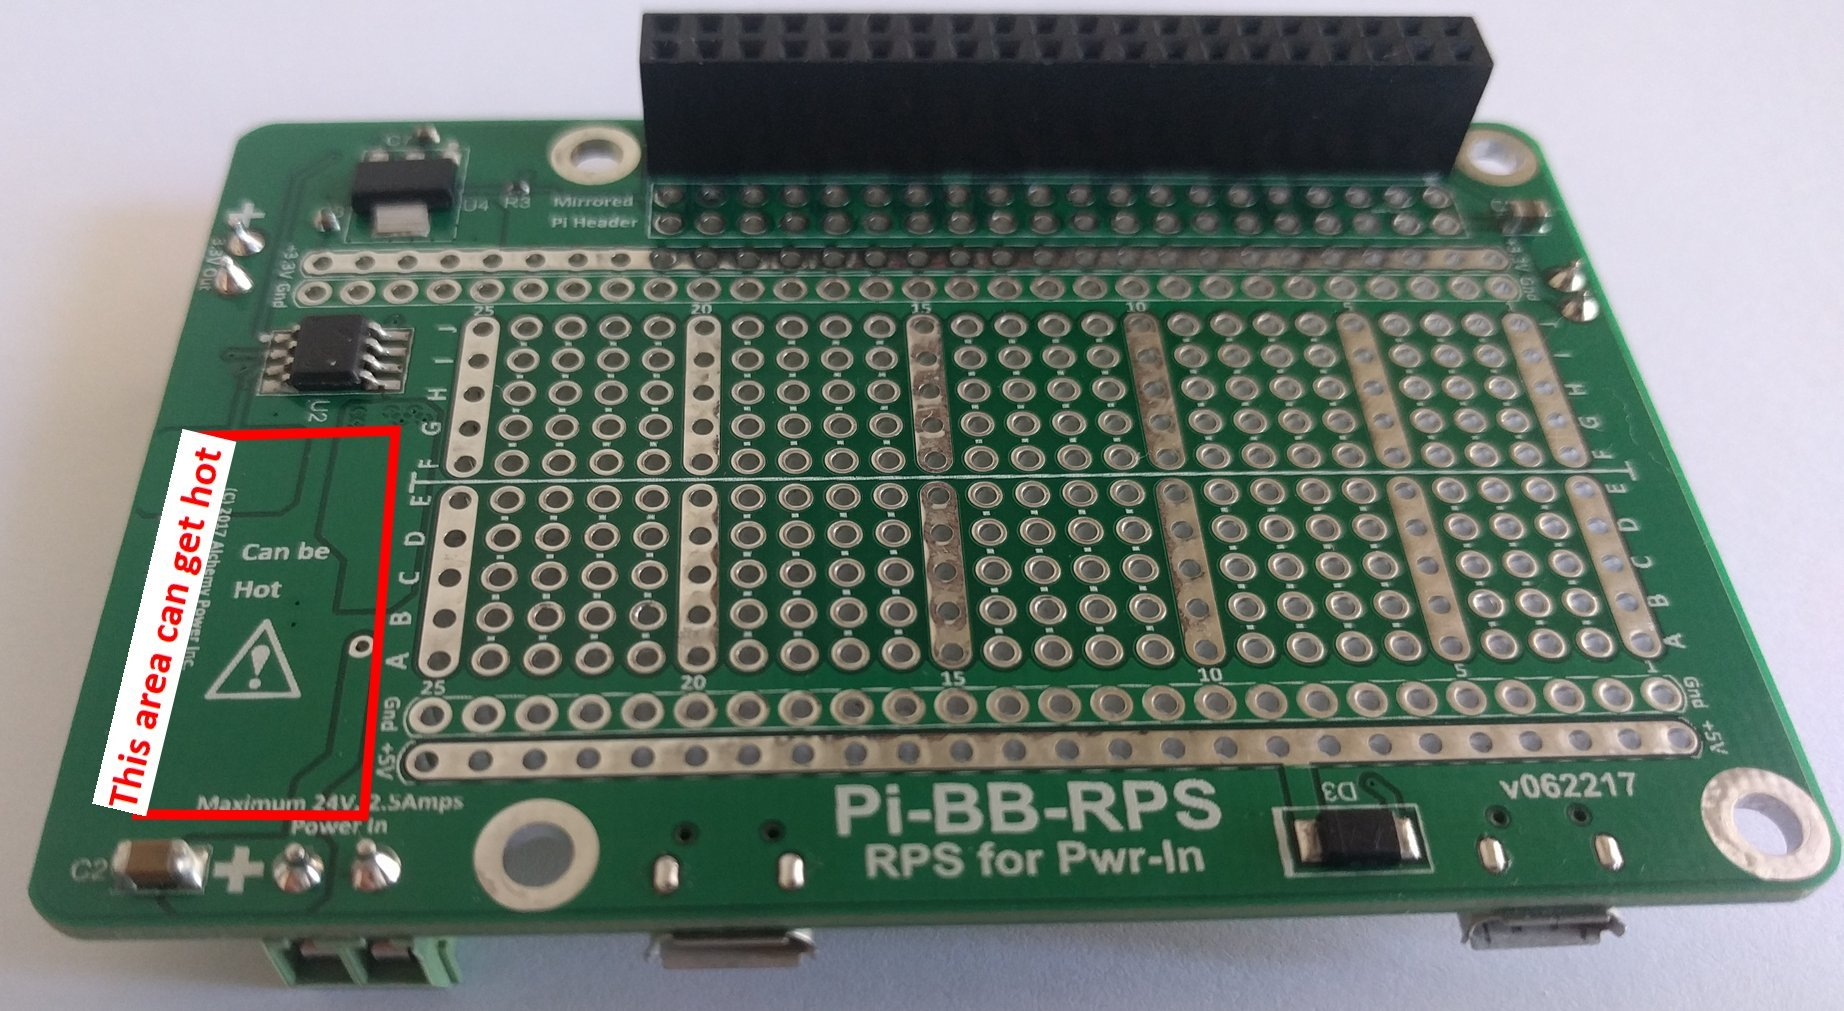 Alchemy Power Inc. Pi-BB-RPS Powered Breadboard with Redundant Power Supply (RPS) and more... by Alchemy Power Inc. TM (Image #7)